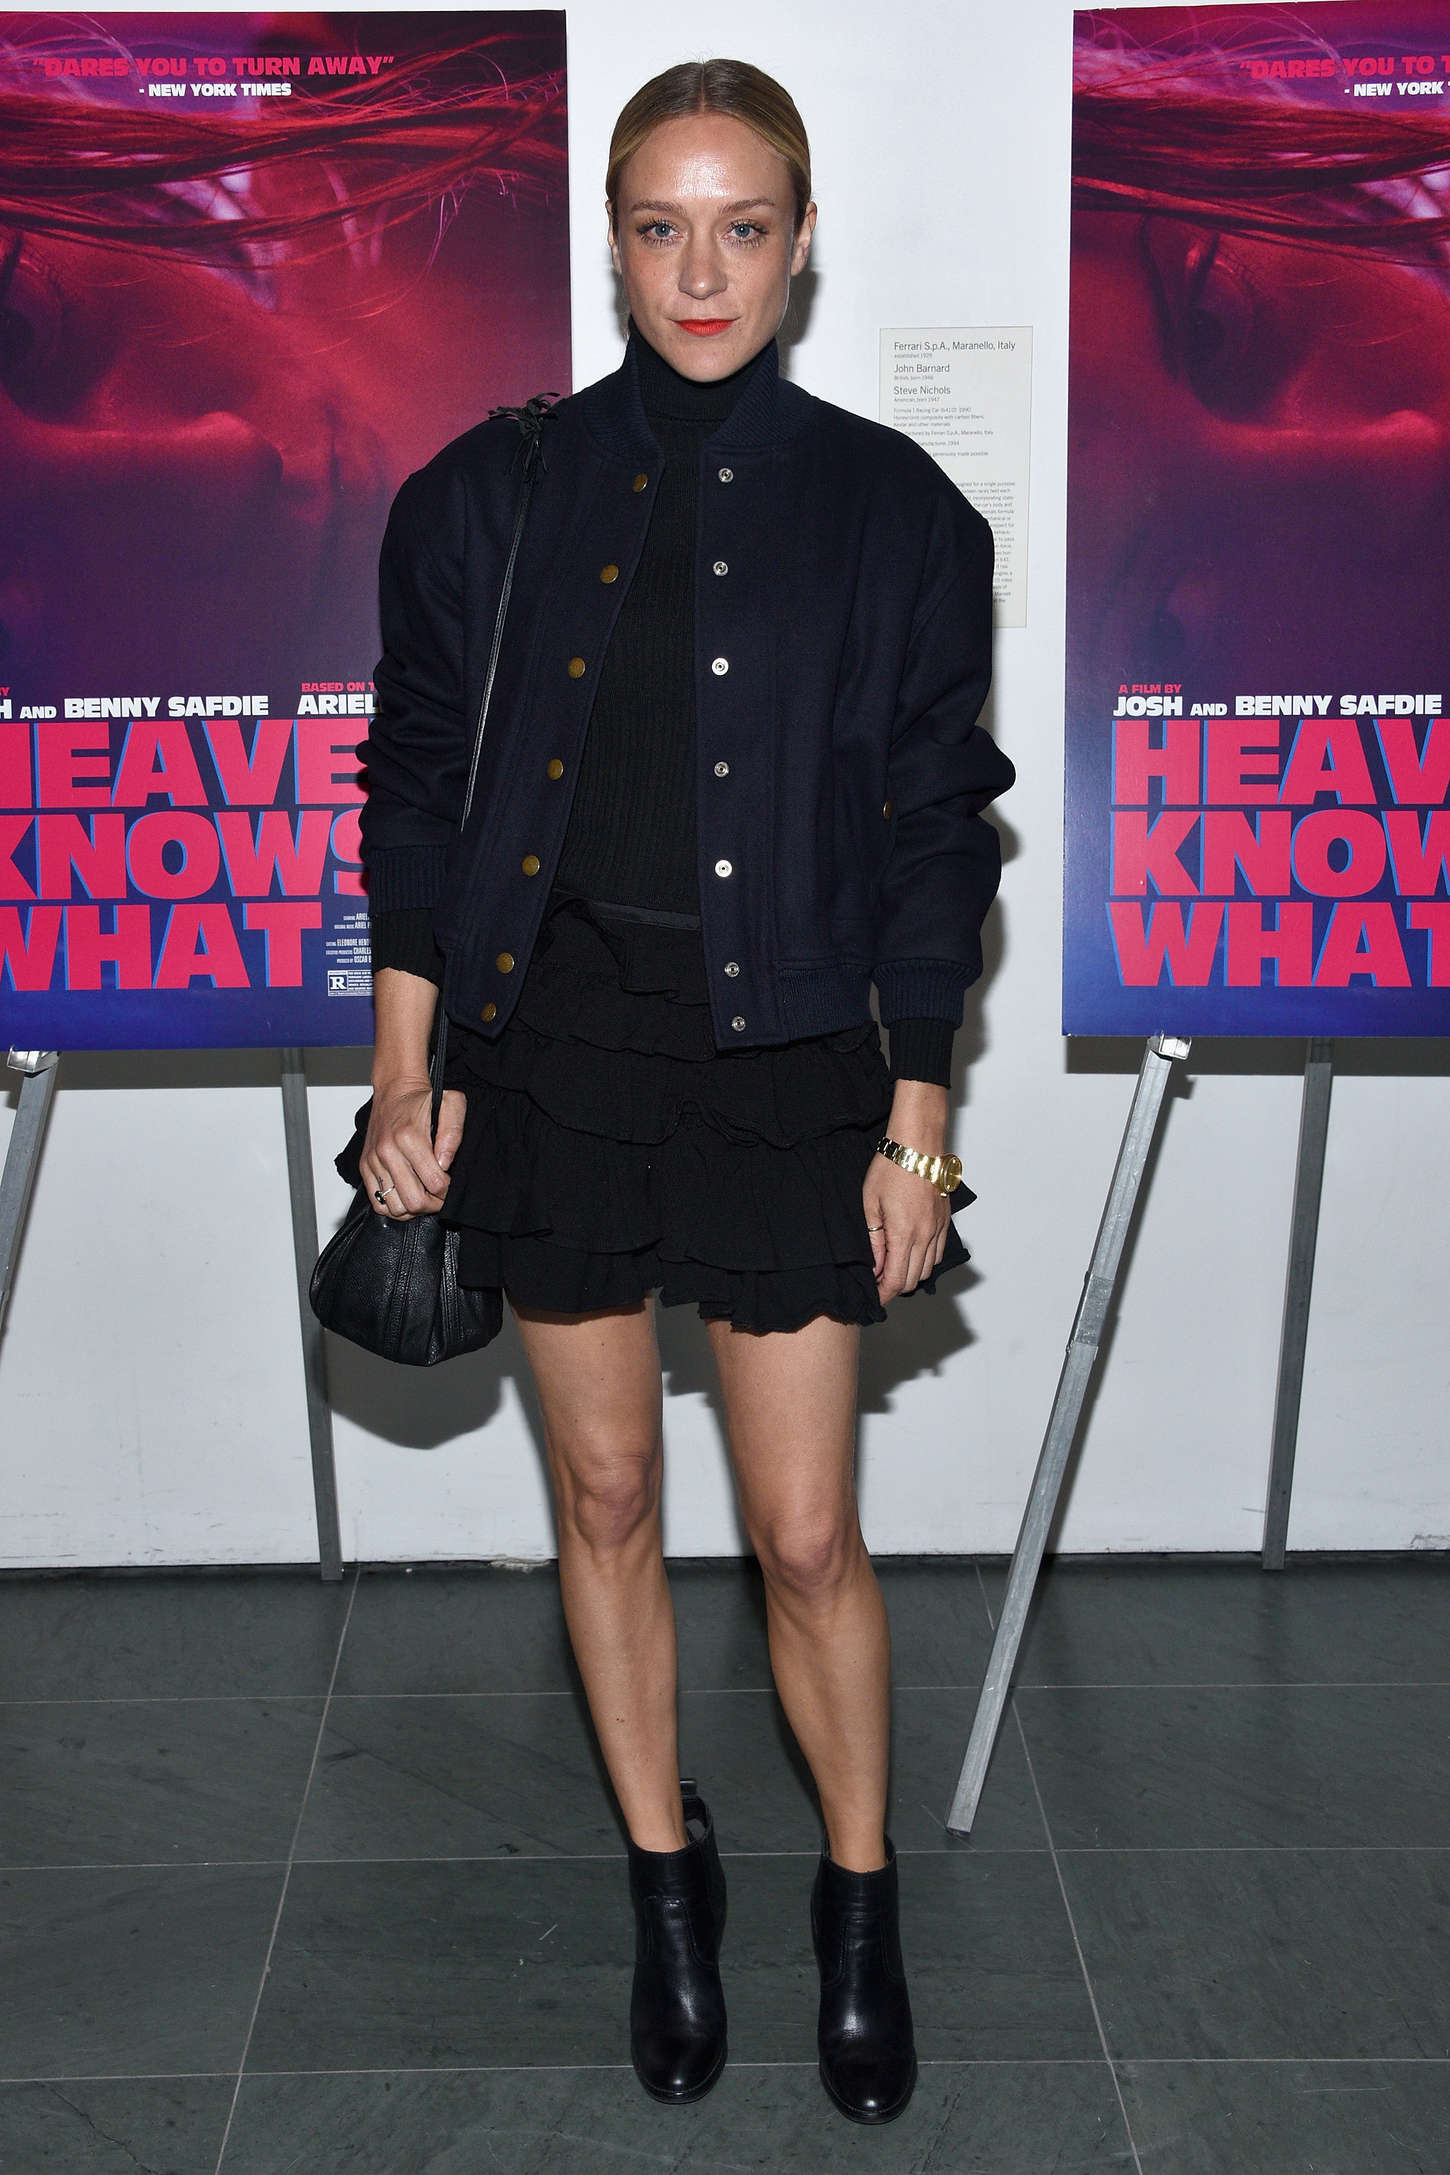 Chloe Sevigny Heaven Knows What Premiere in New York